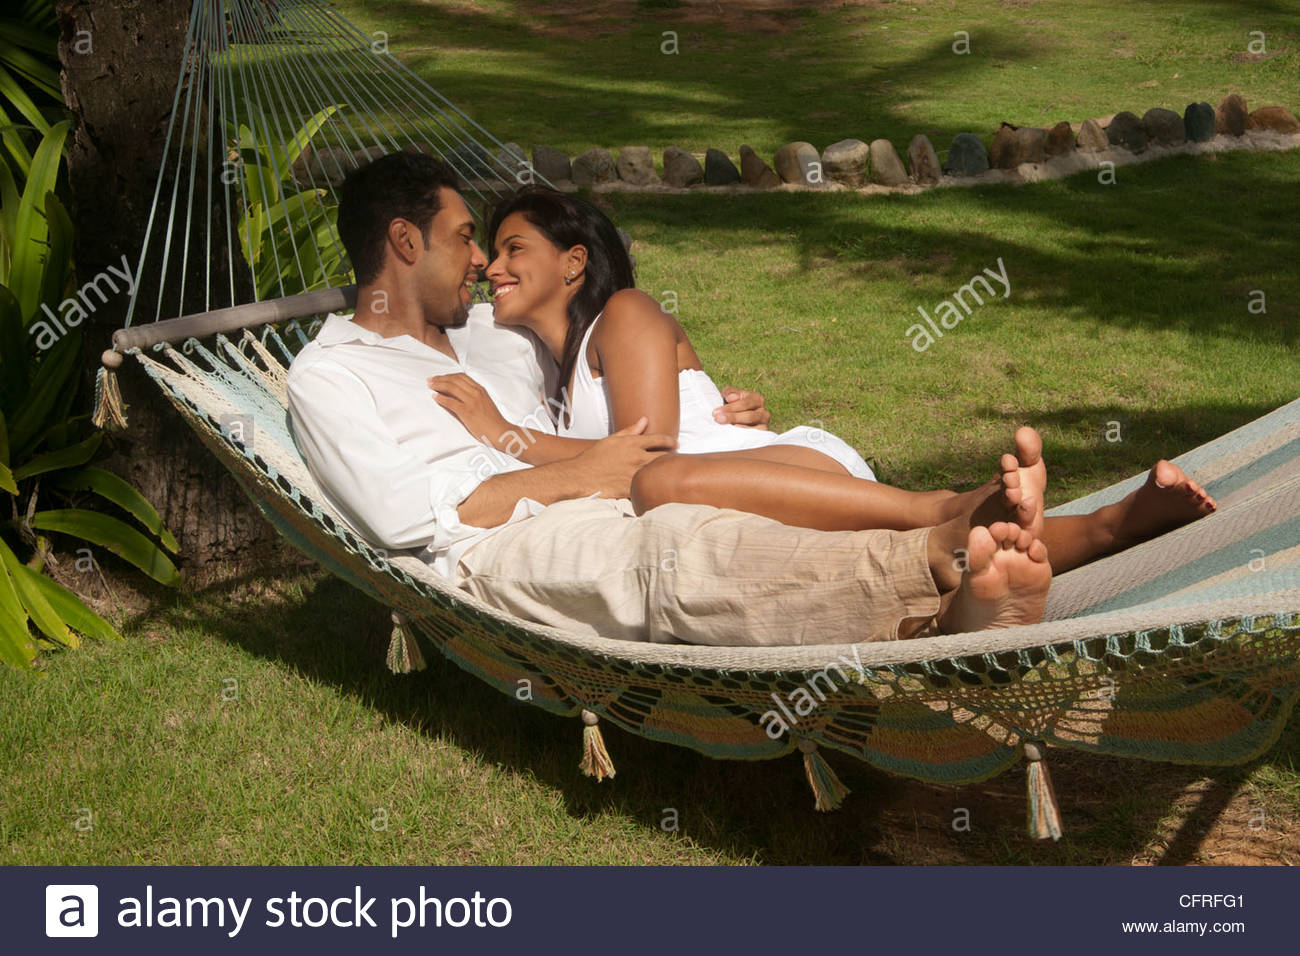 Hispanic couple relaxing in a hammock, Luquillo, Puerto Rico, United States of America, Central America - Stock Image